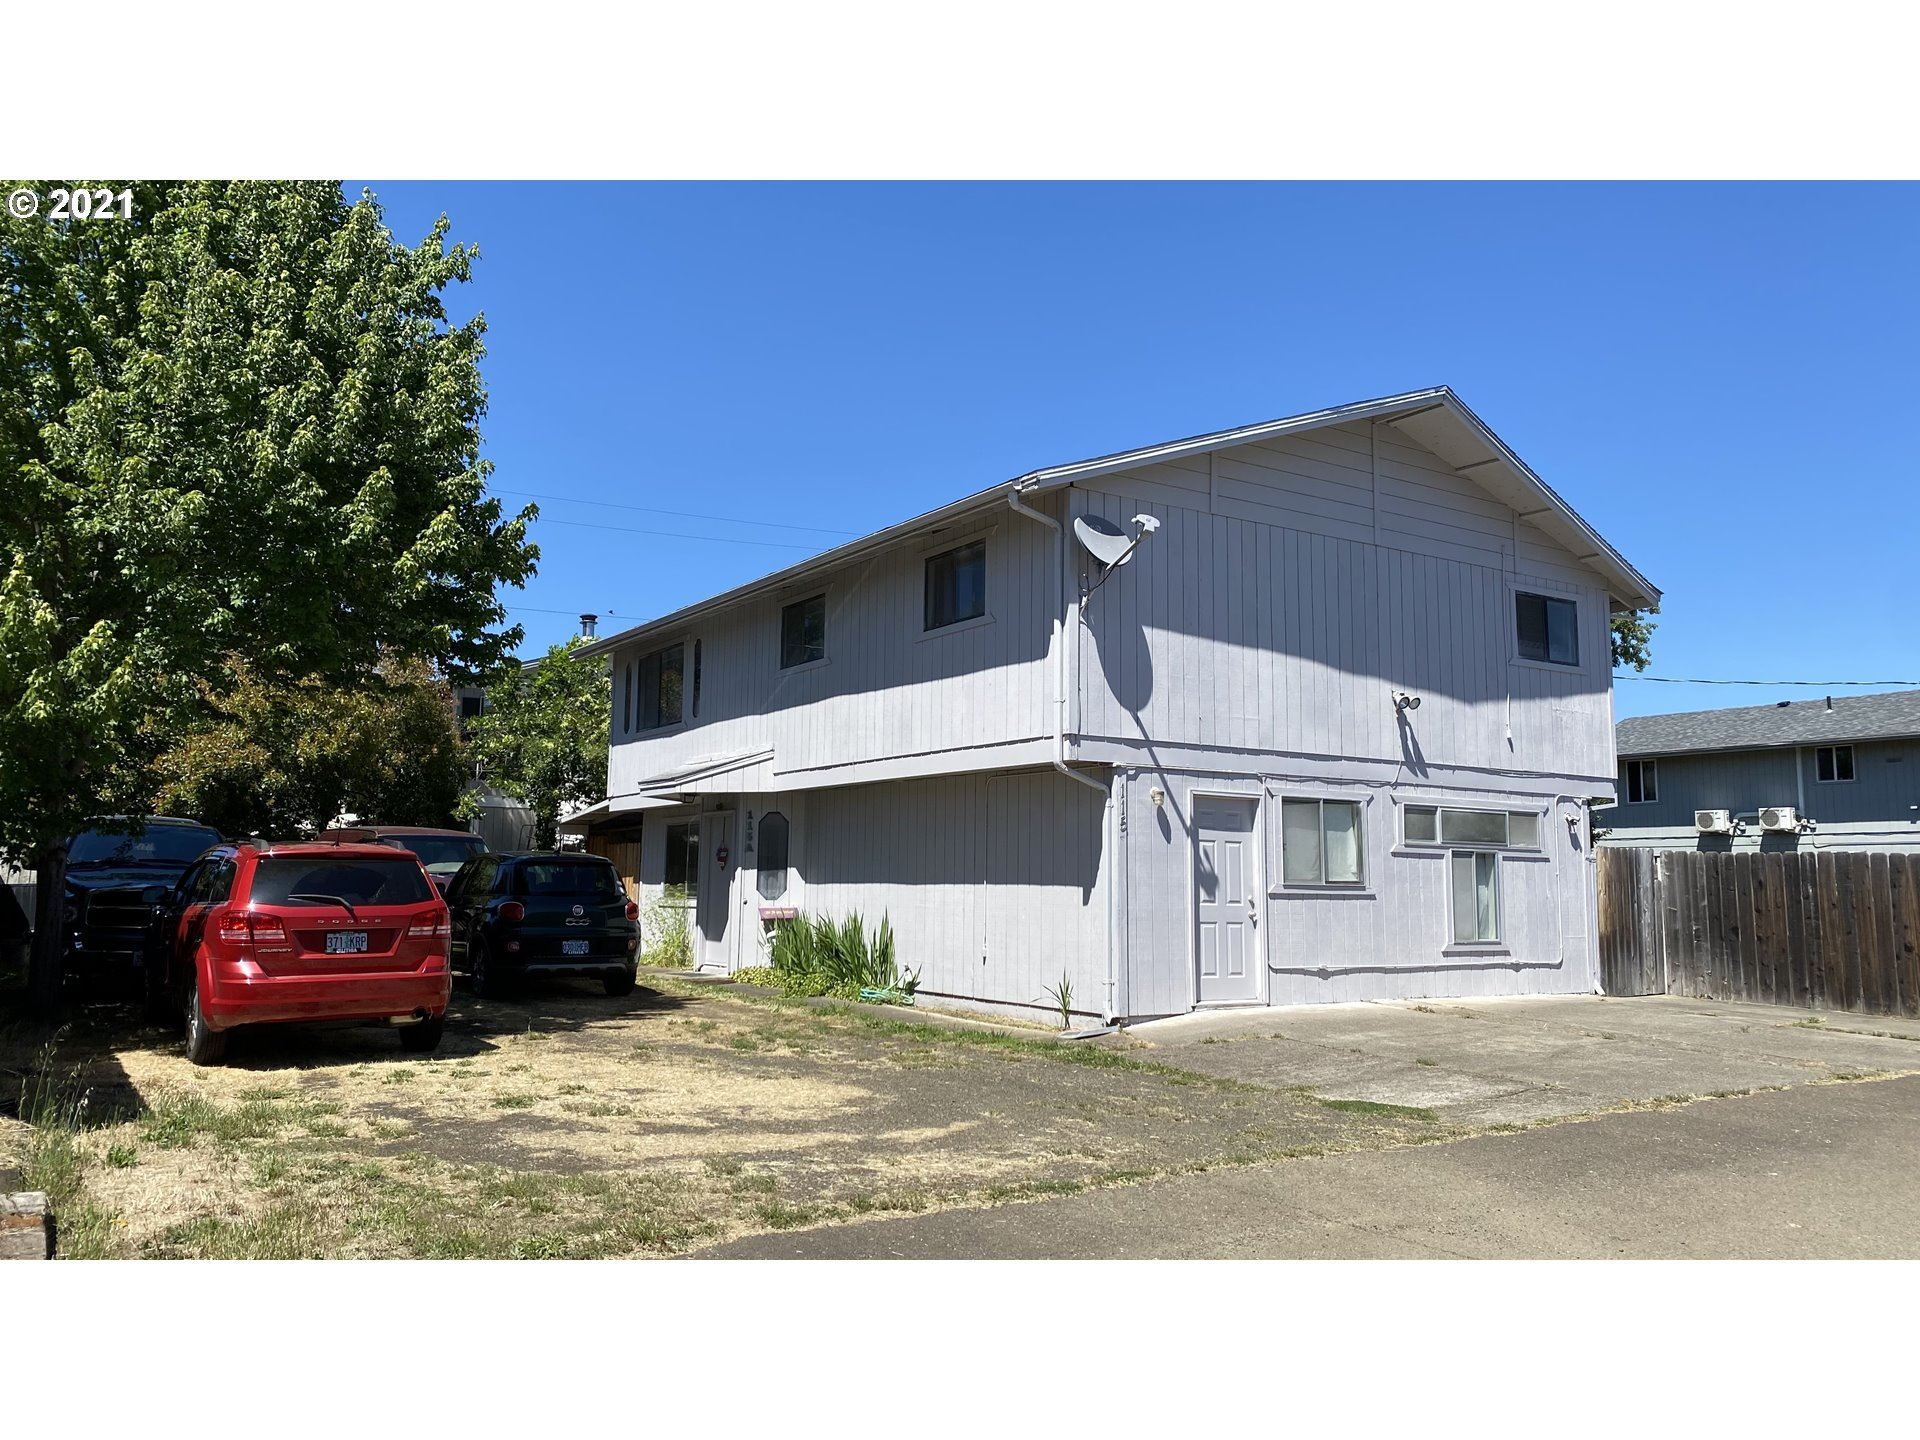 115 NW CARY ST, Winston, OR 97496 - MLS#: 21621075